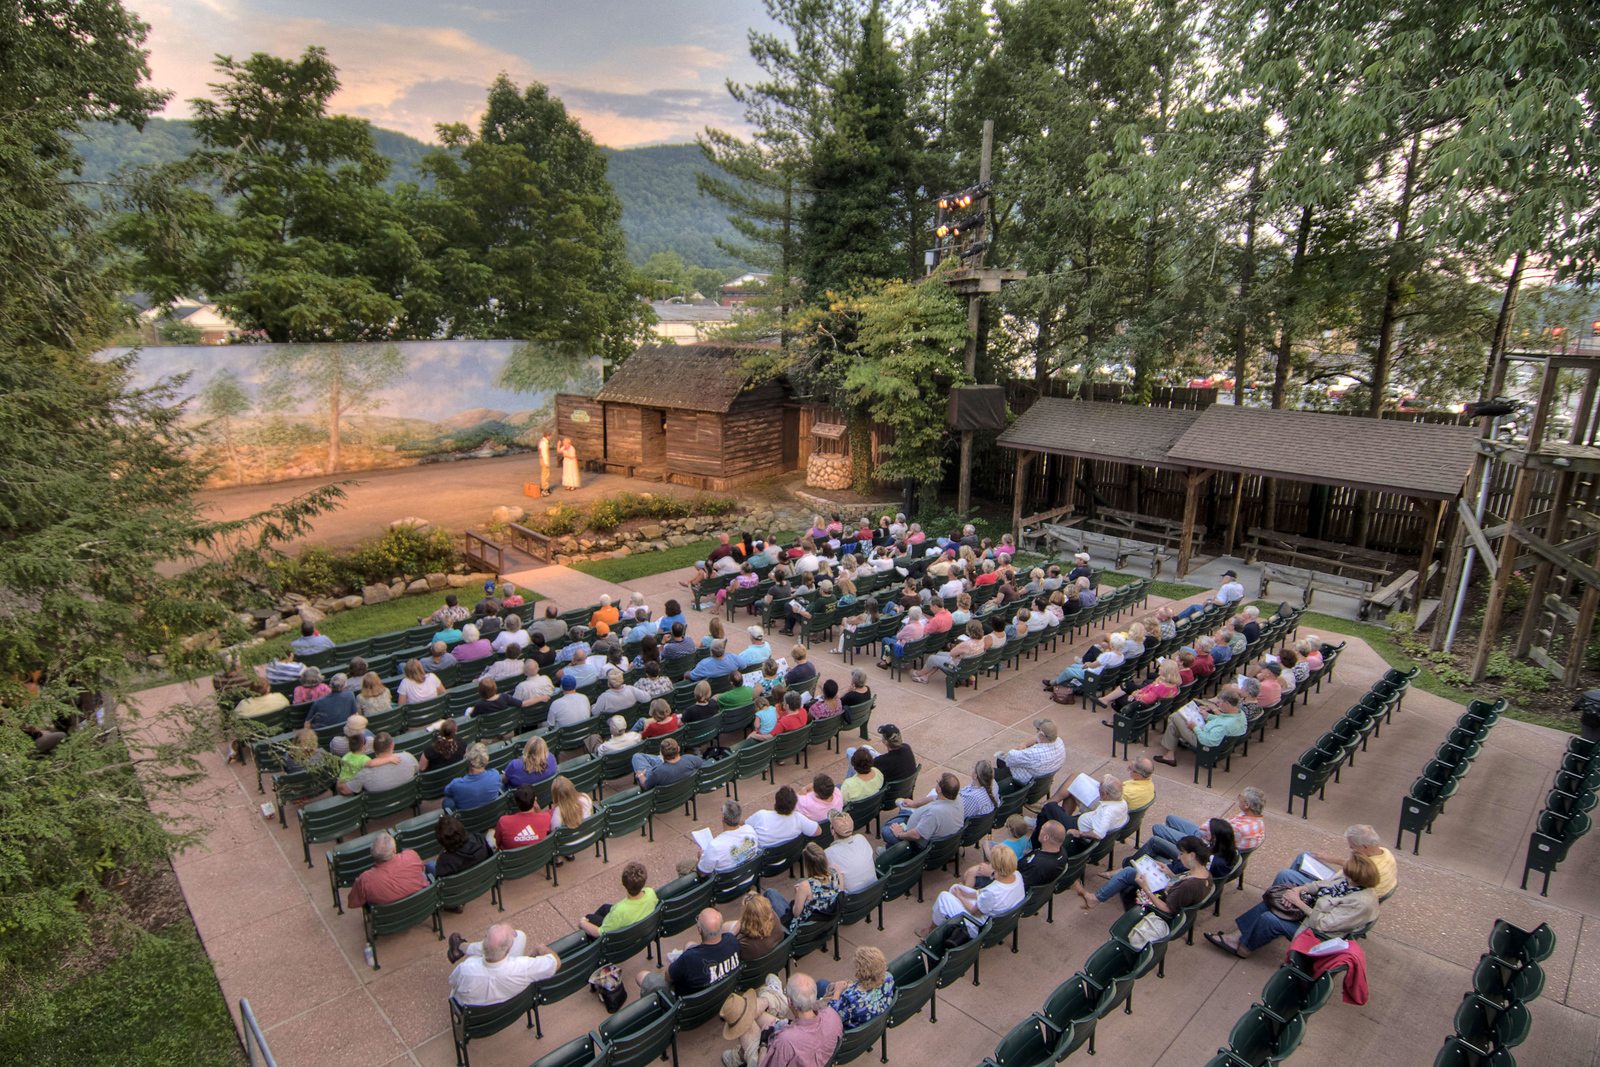 A nearly-full audience watch the outdoor drama, nestled in a valley between mountain ranges, as The Trail of the Lonesome Pine Outdoor Drama held a 50th Anniversary Celebration and Reunion in Big Stone Gap, VA on Friday, July 26, 2013. Copyright 2013 Jason Barnette